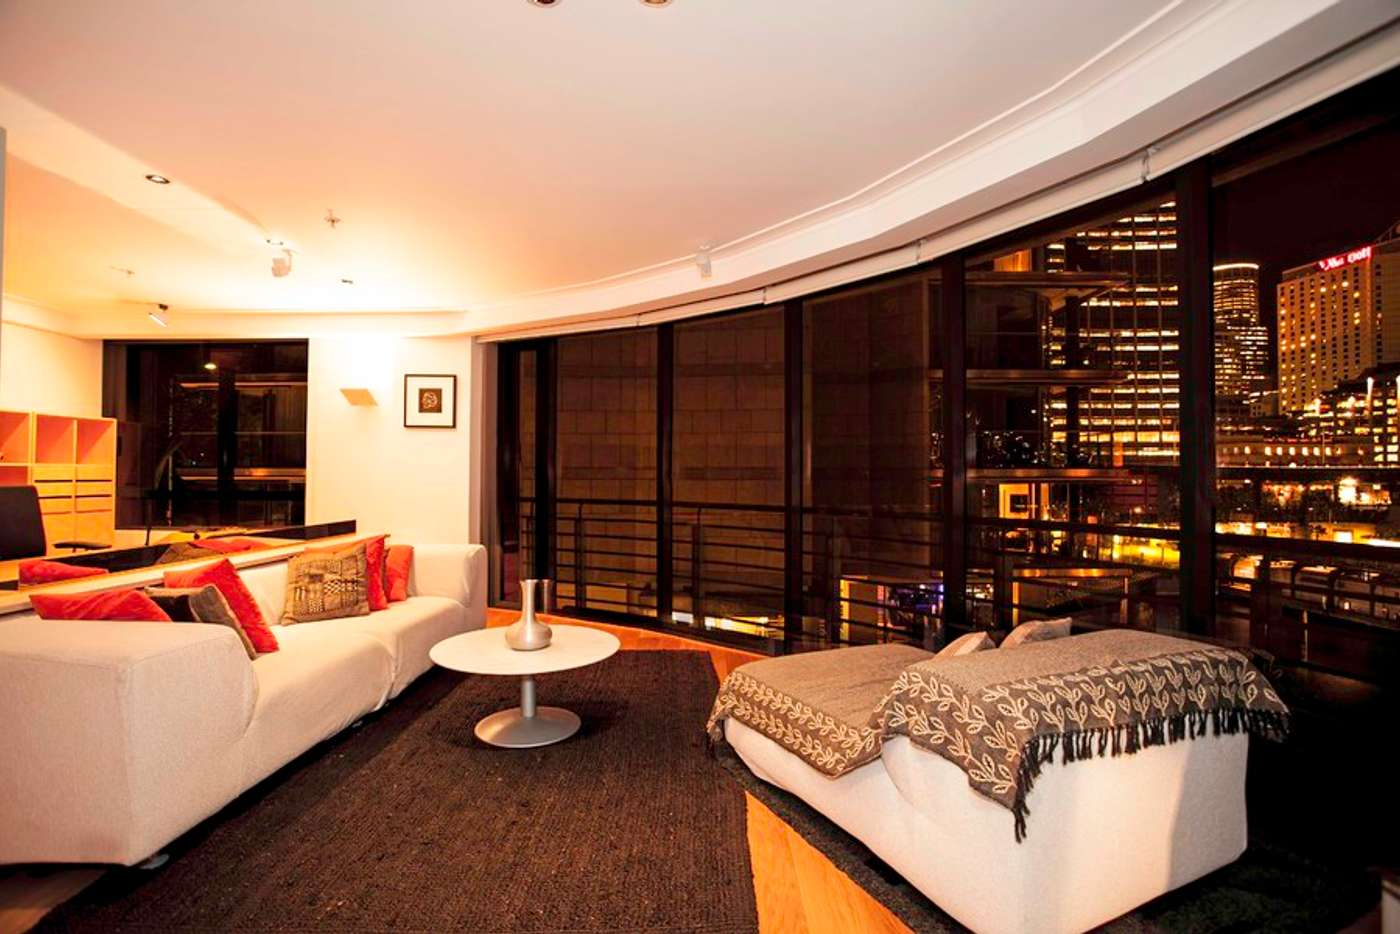 Main view of Homely apartment listing, 33/7 Macquarie Street, Sydney NSW 2000